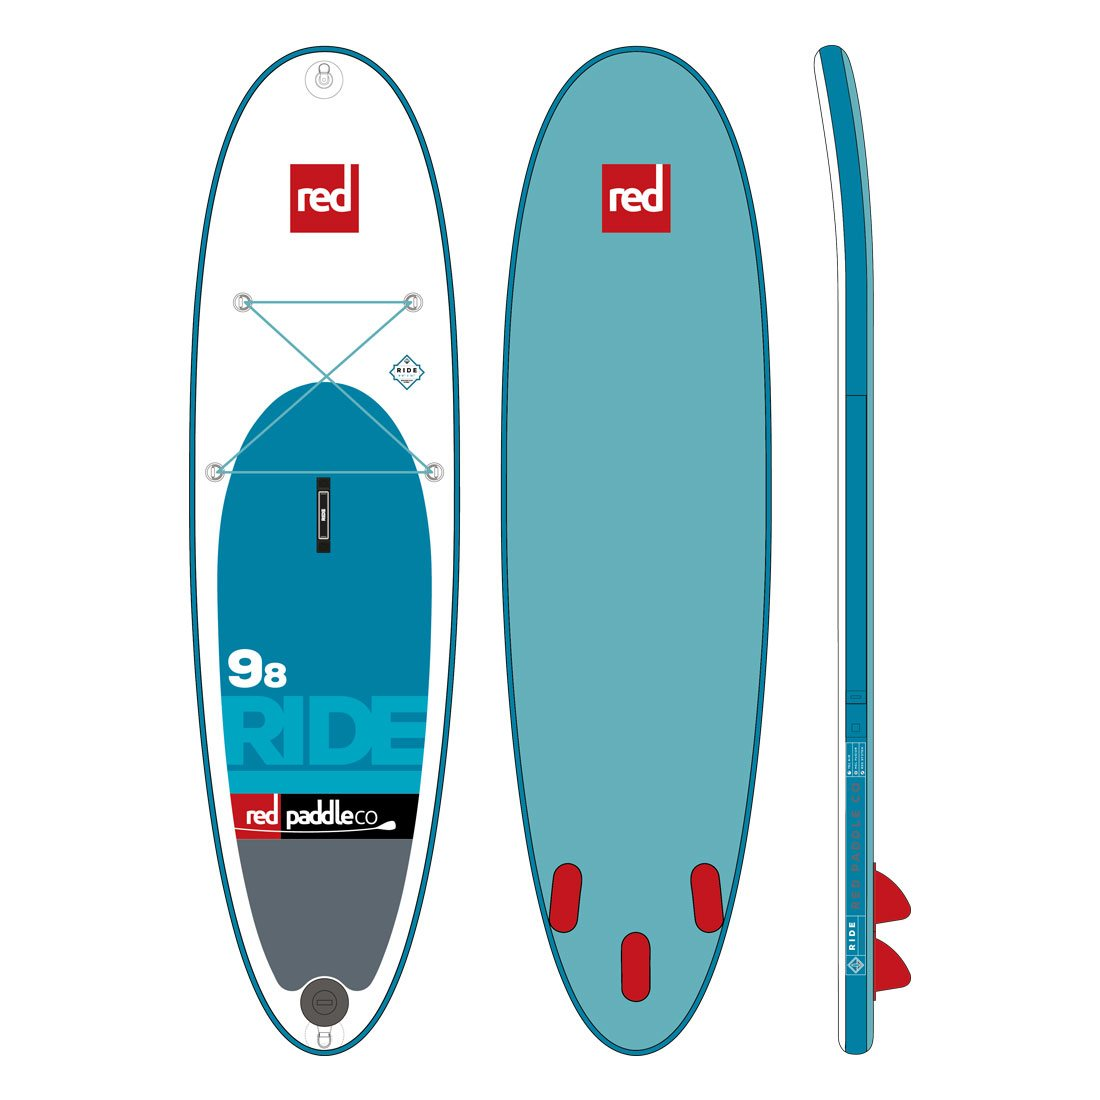 "Nafukovací SUP RED 9'8"" RIDE model 2017"